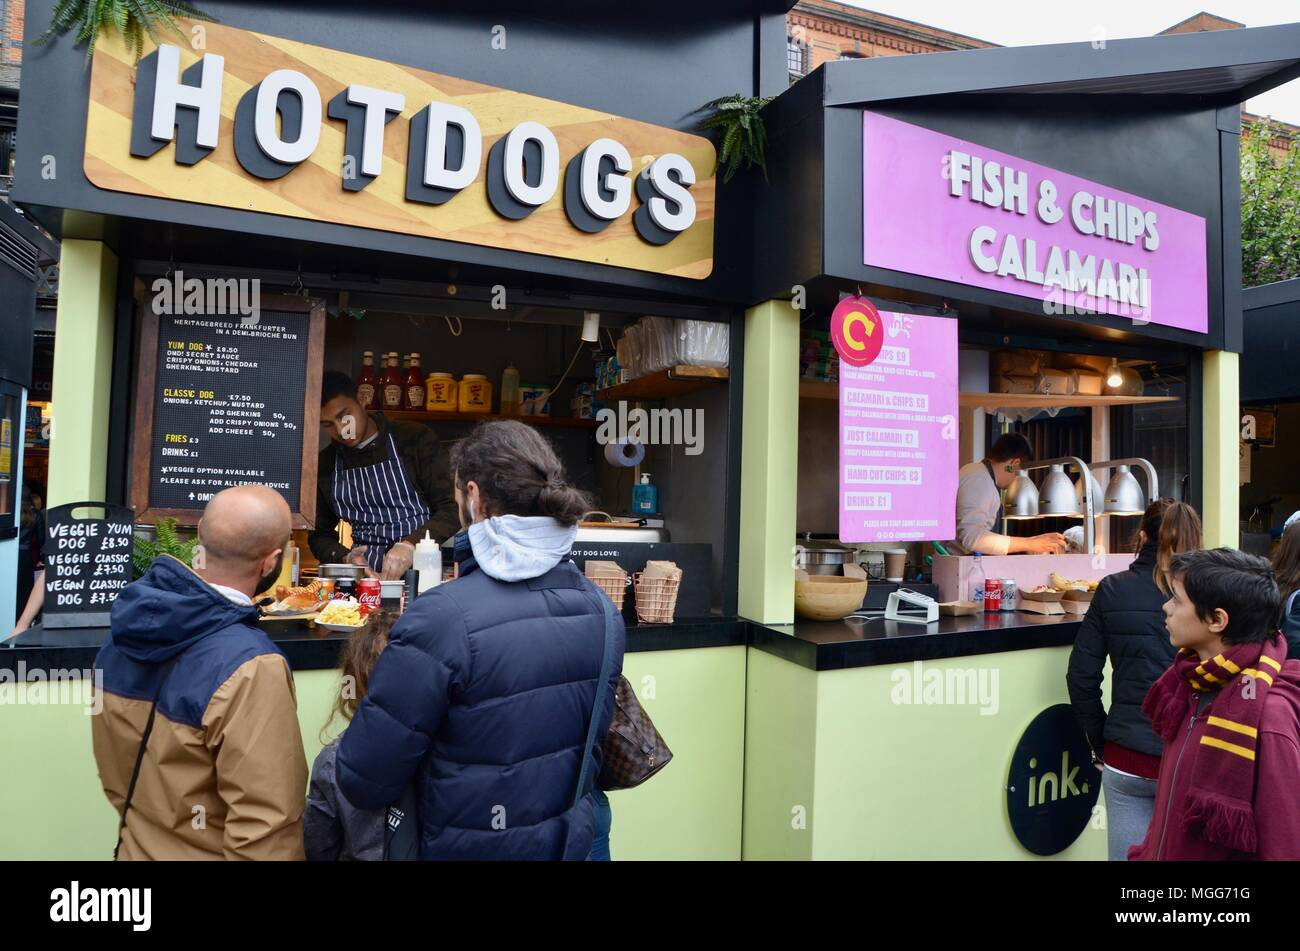 street style food stalls at kerb camden market the stables london UK selling hotdogs fish and chips curries colombian indian and more with tourists - Stock Image